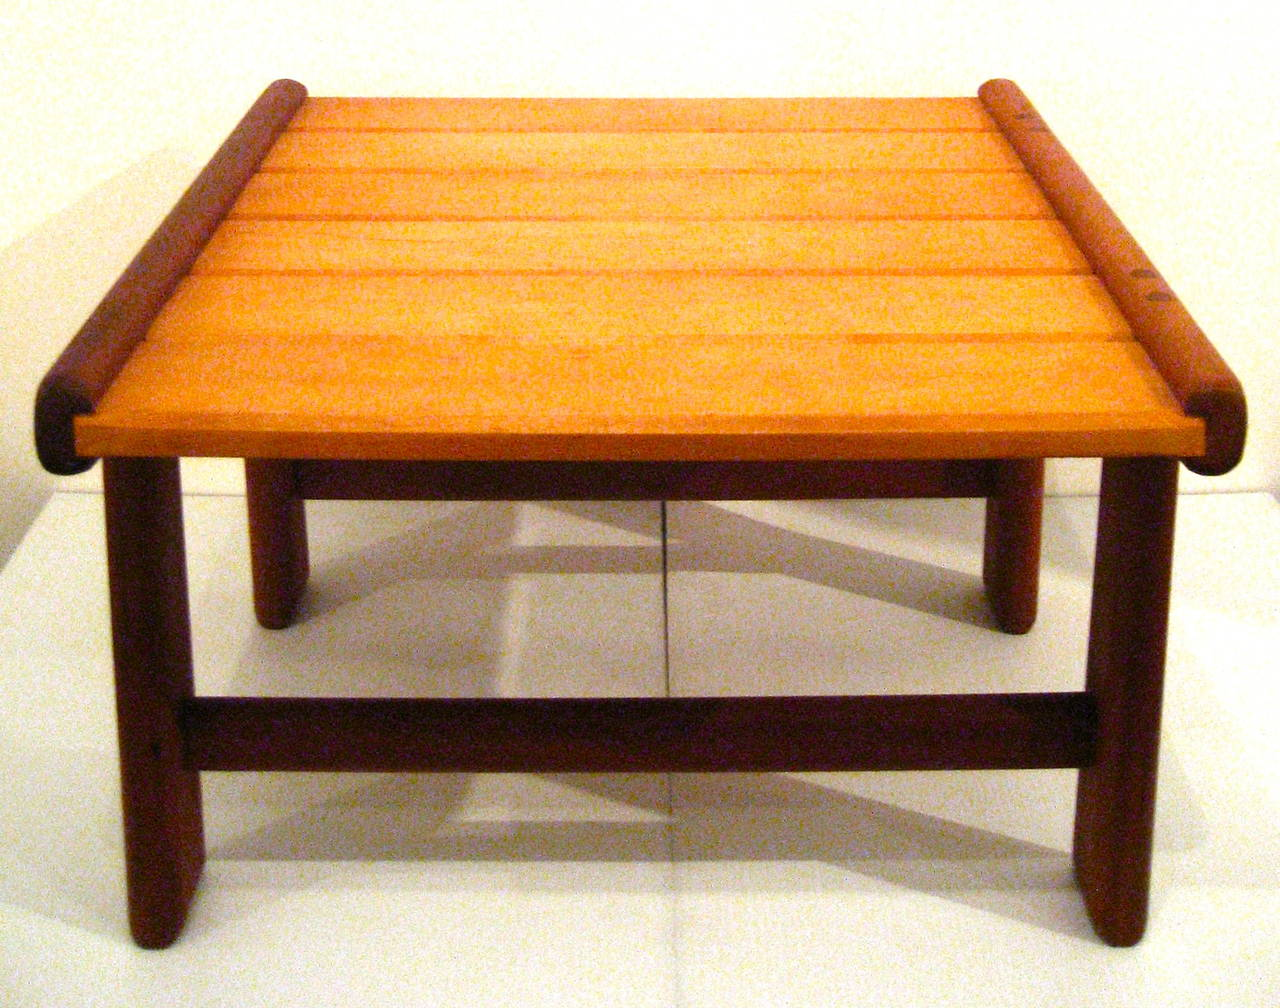 Danish Modern Noguchi Style Low Japanese Bench Or Stool At 1stdibs